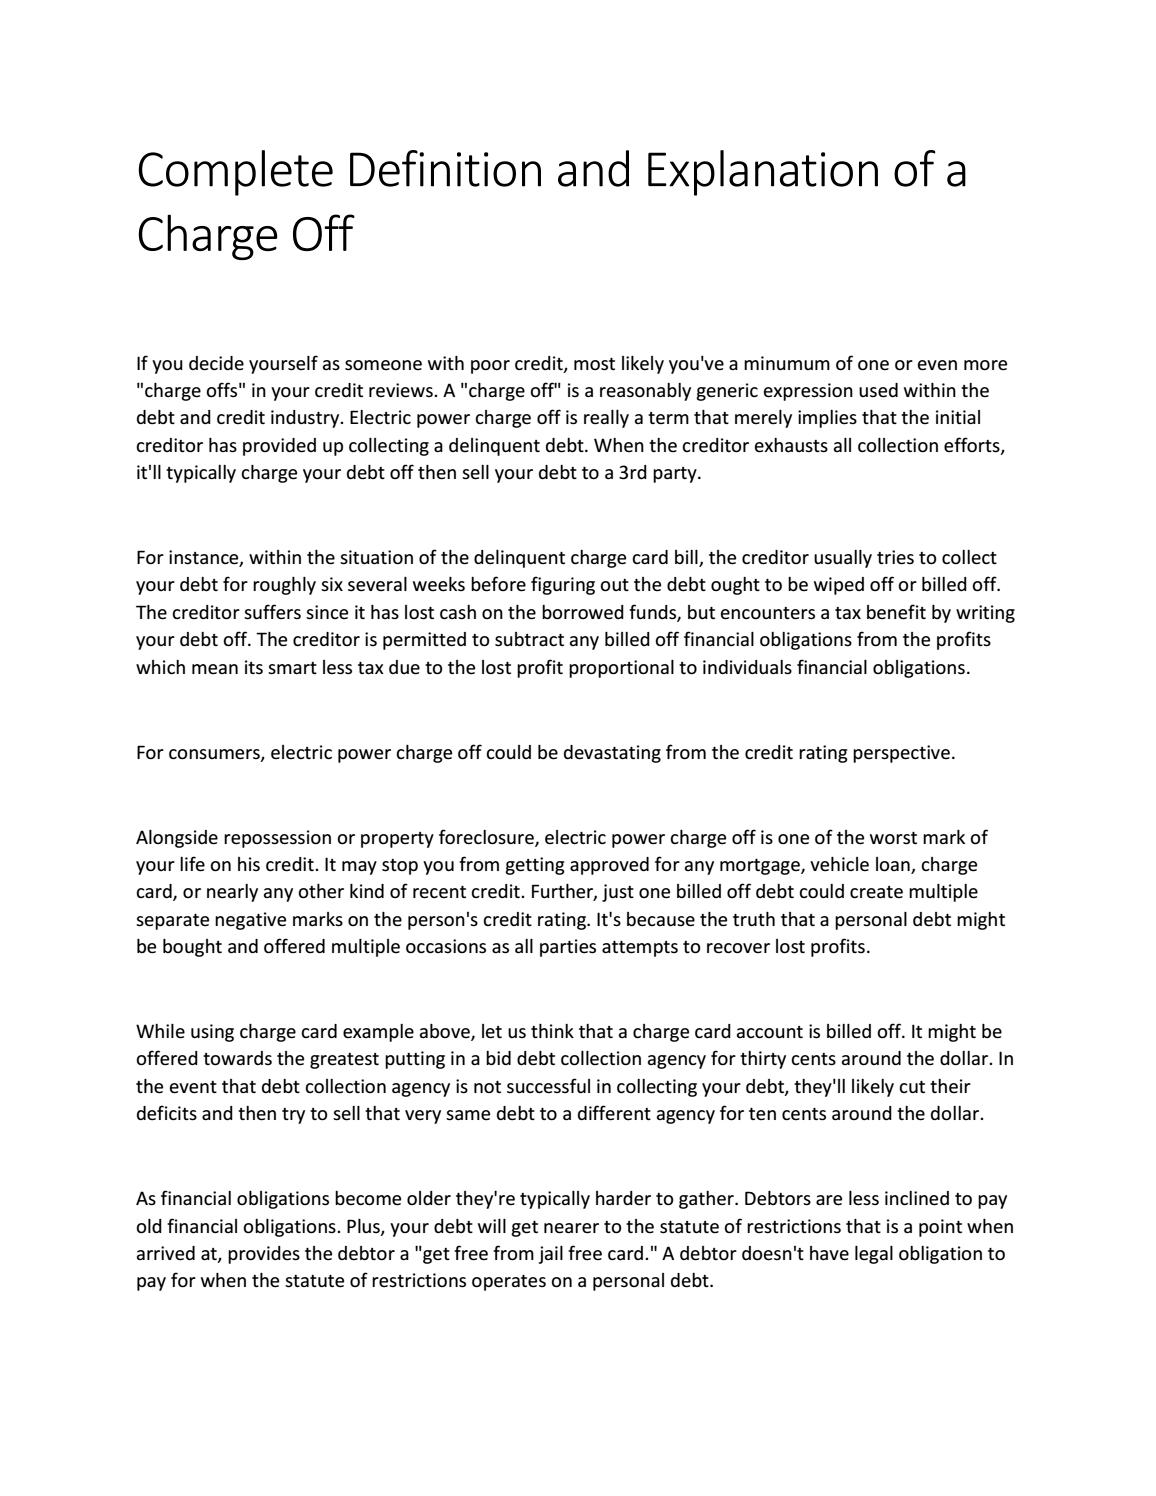 complete definition and explanation of a charge off by nadia javaid